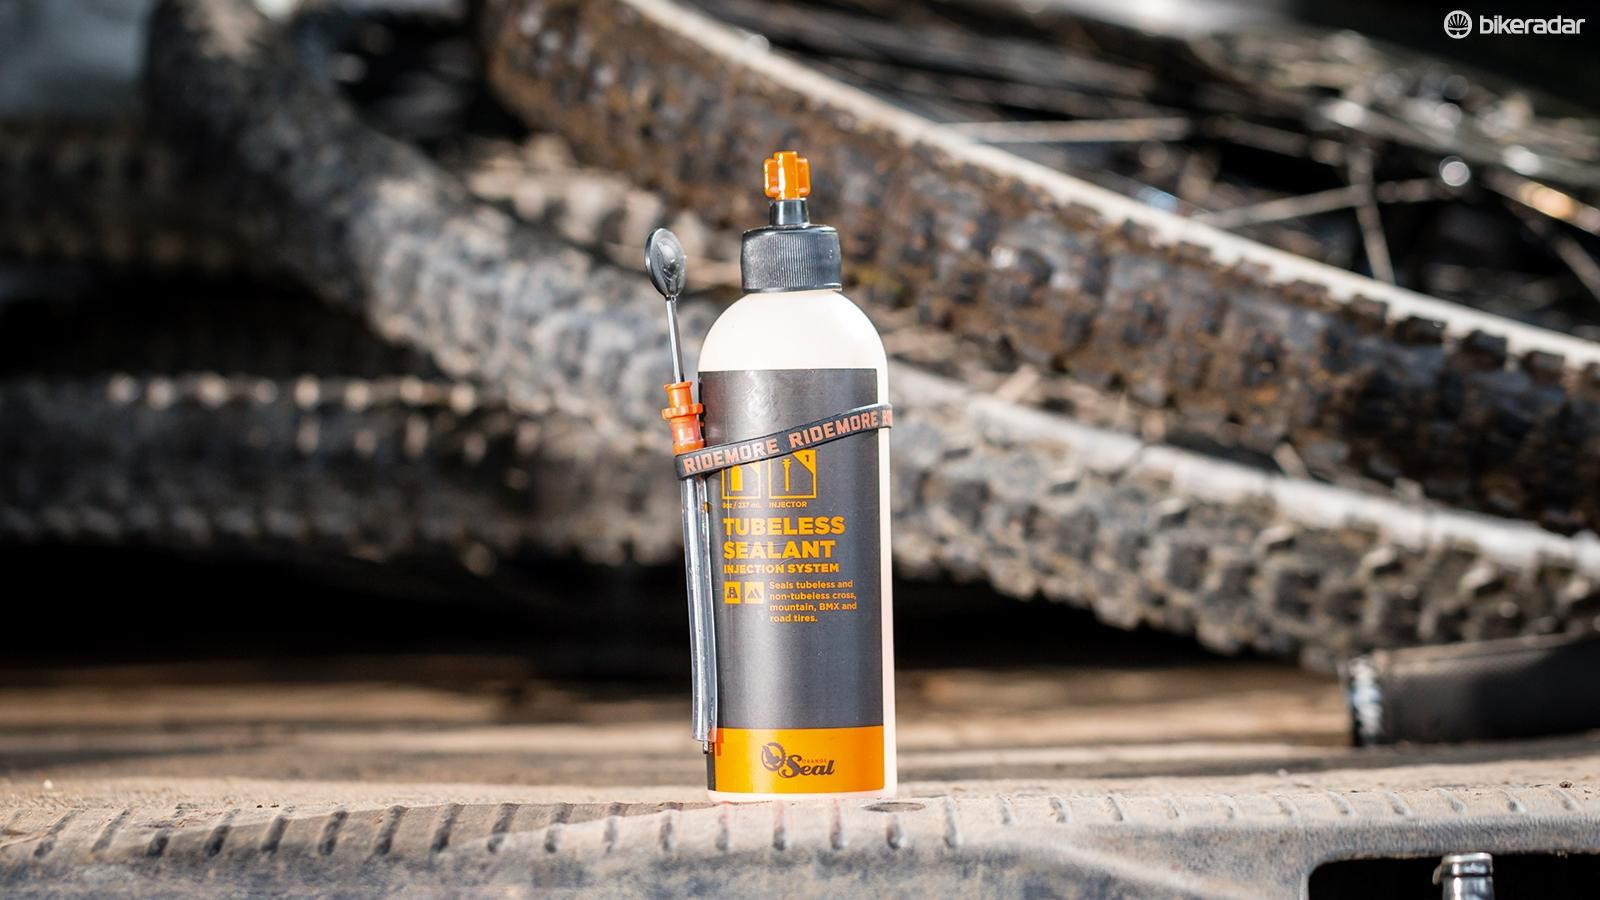 We've had the best performance with Orange Seal for tubeless tyres